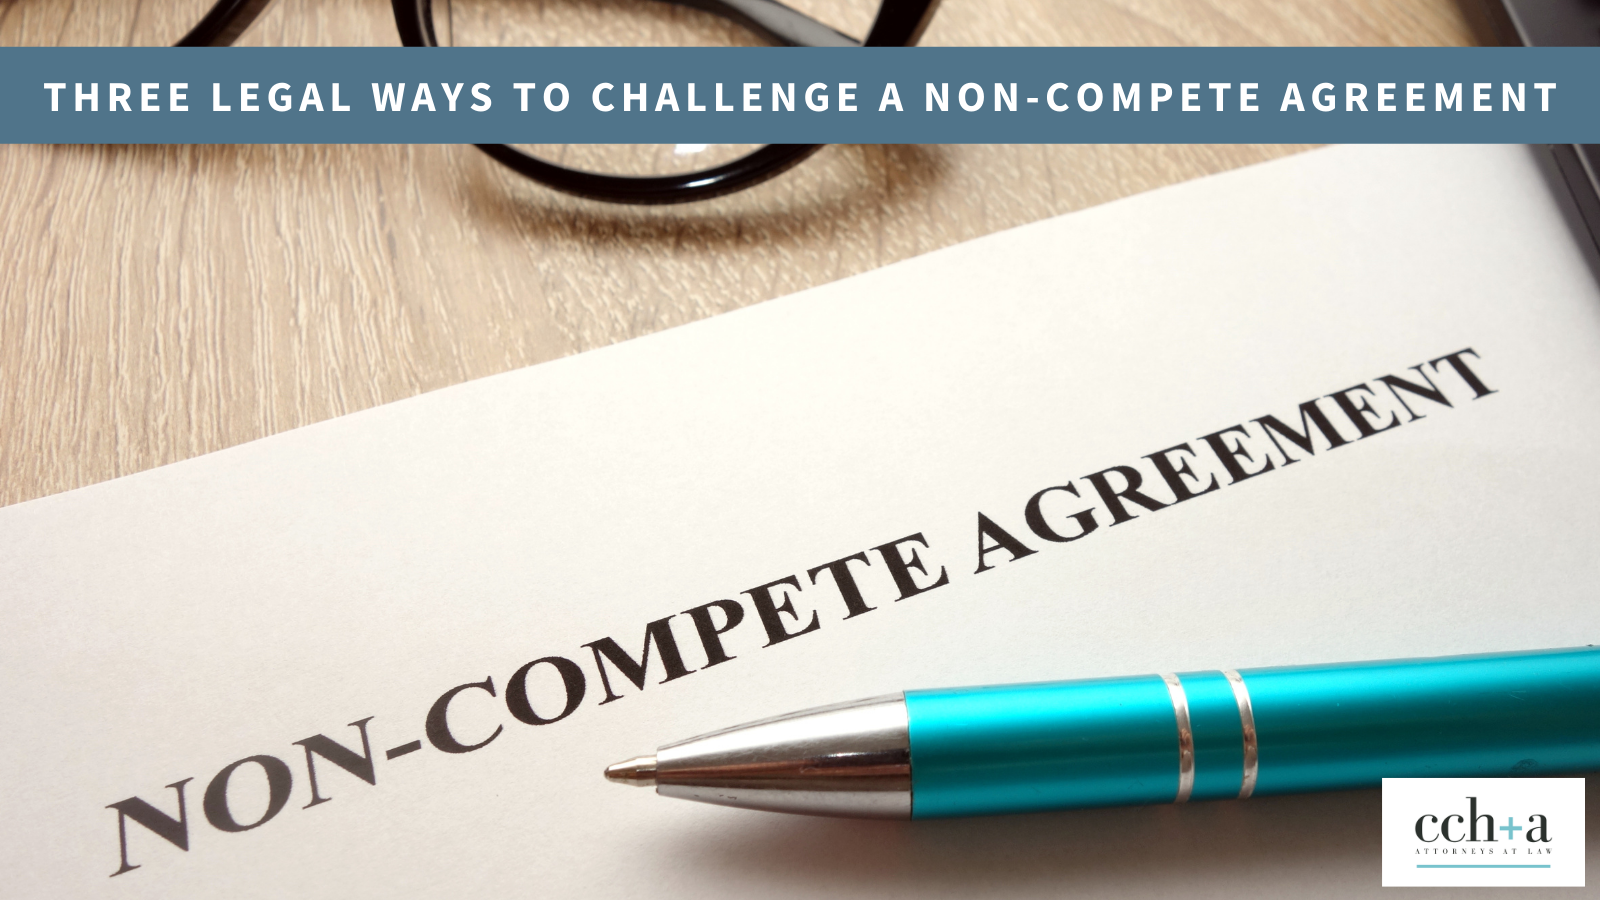 Ccha feb 2021 Three legal ways to challenge a non compete agreement tw FINAL